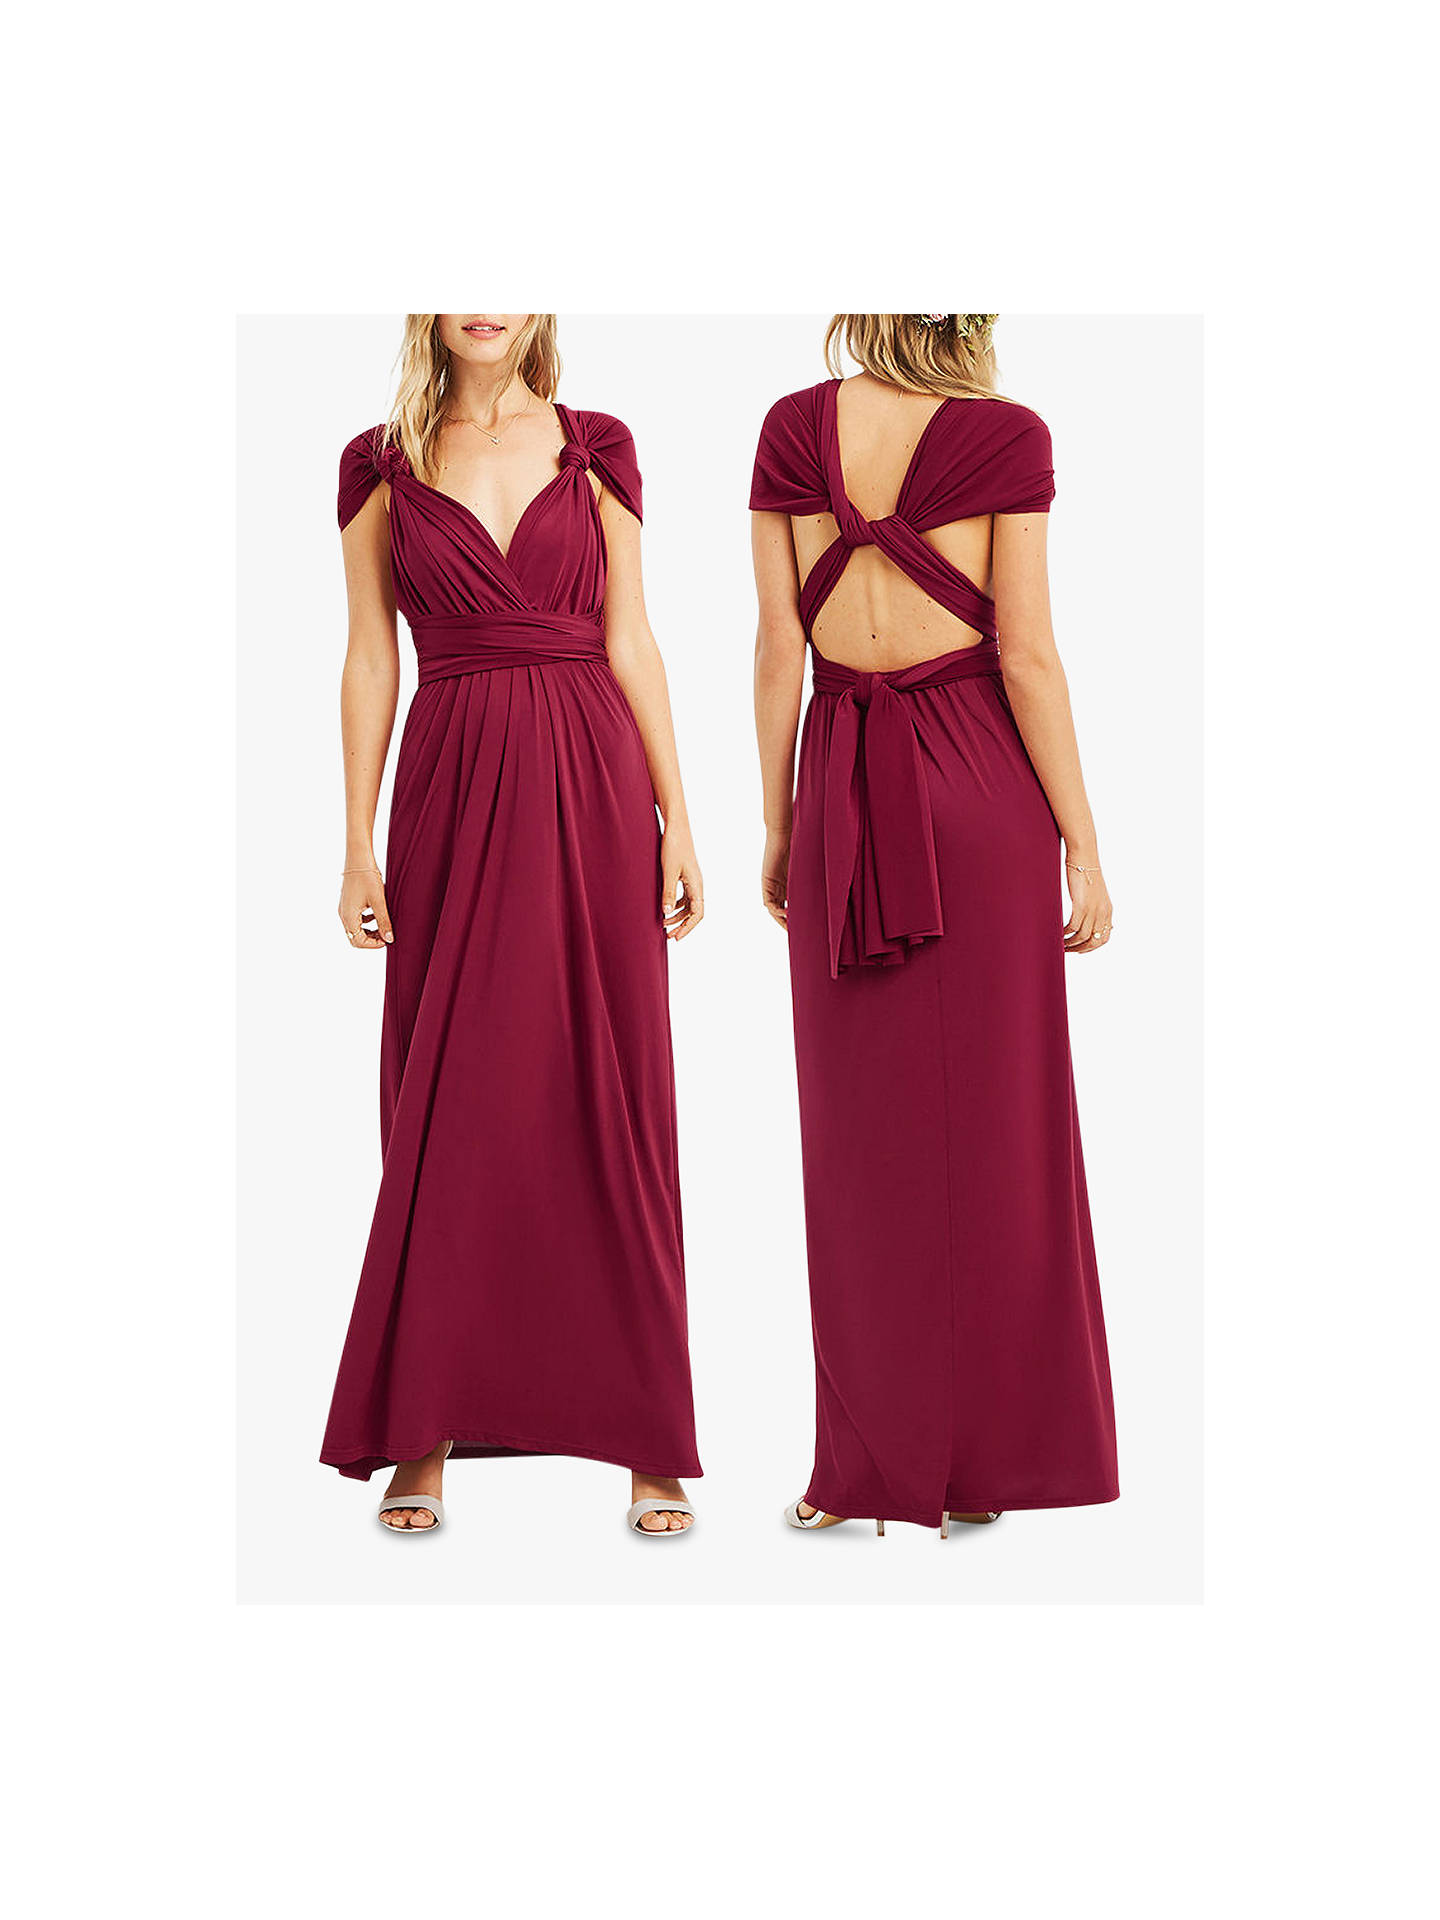 f6ccef688412 ... Buy Oasis Annie Multiway Maxi Dress, Burgundy, XS Online at  johnlewis.com ...